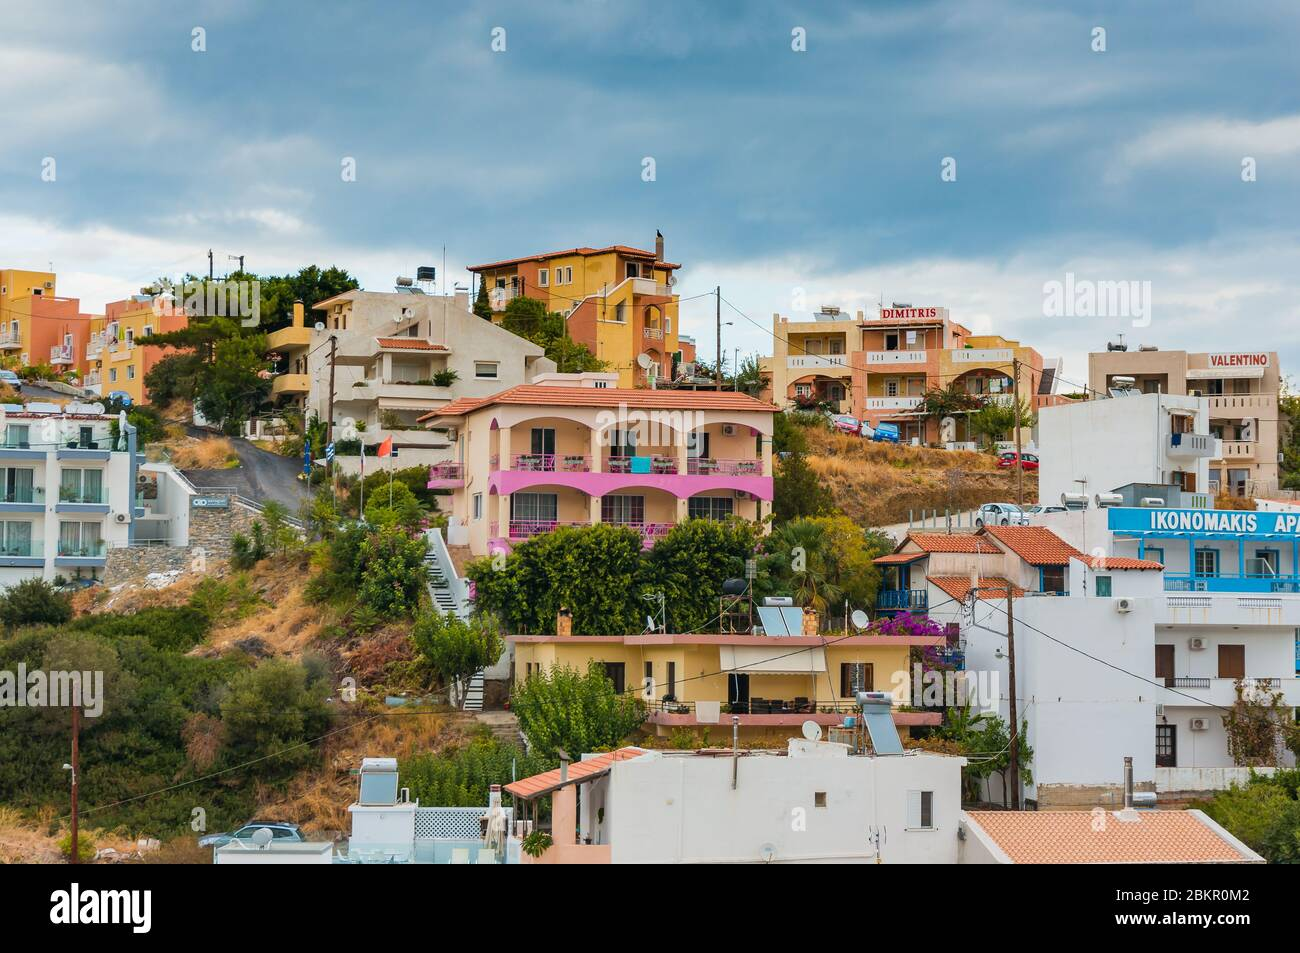 Bali Crete High Resolution Stock Photography And Images Alamy